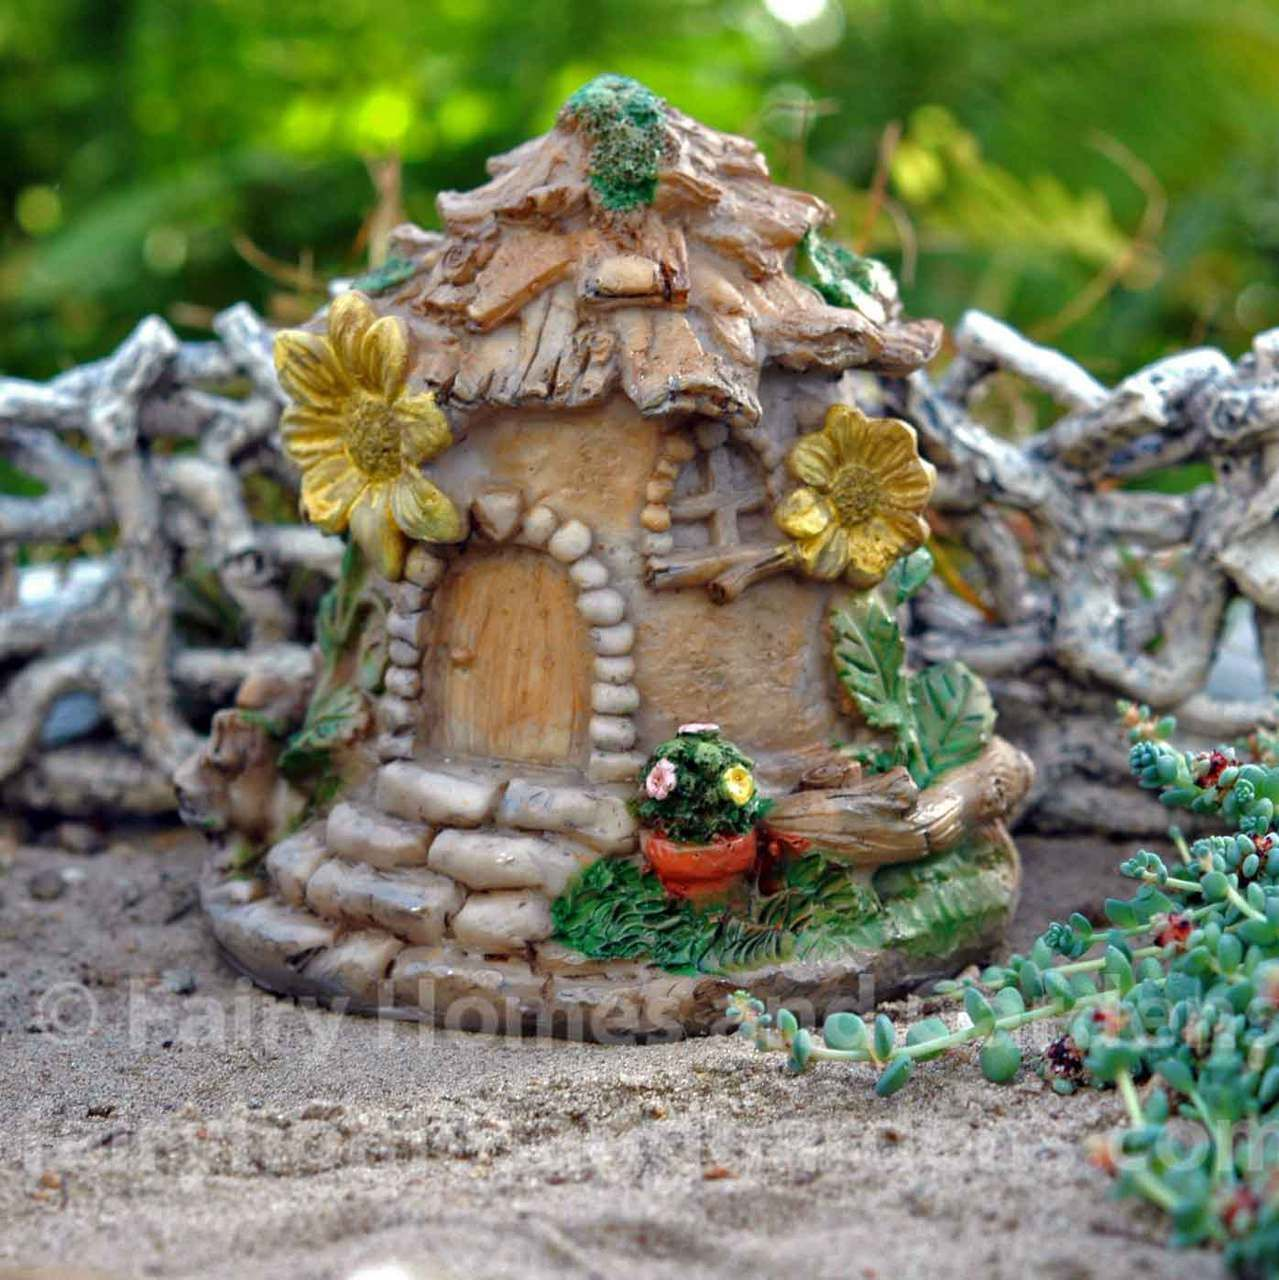 Shapely Fairy Homes Fairy House Garden Tour Fairy House Garden Ideas Gardens Terrarium Sunflower Terrarium Sunflower House Sunflower Garden Terrarium garden Fairy House Garden